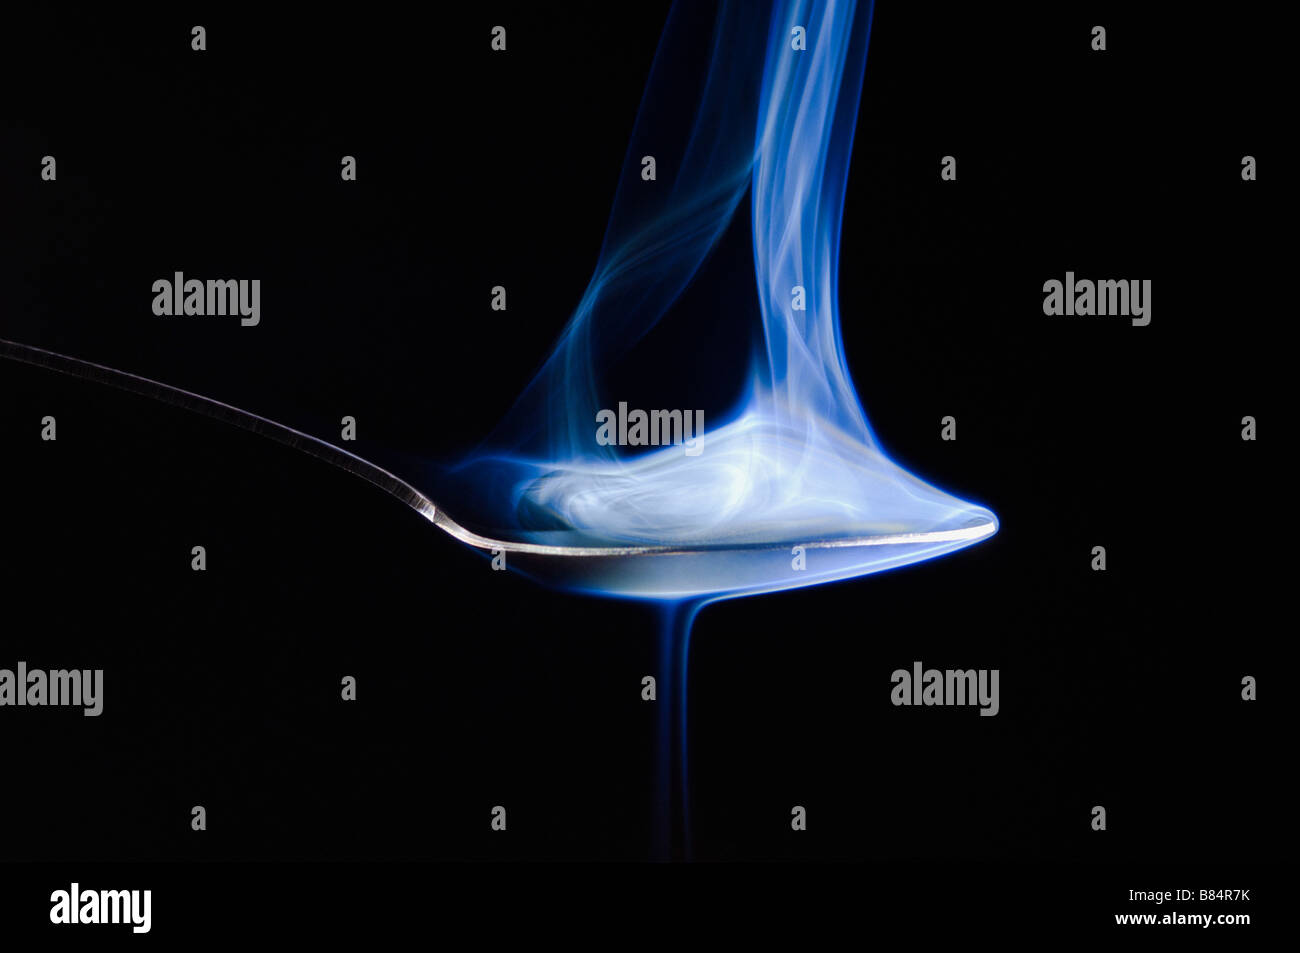 Smoke rising from a spoon - Stock Image